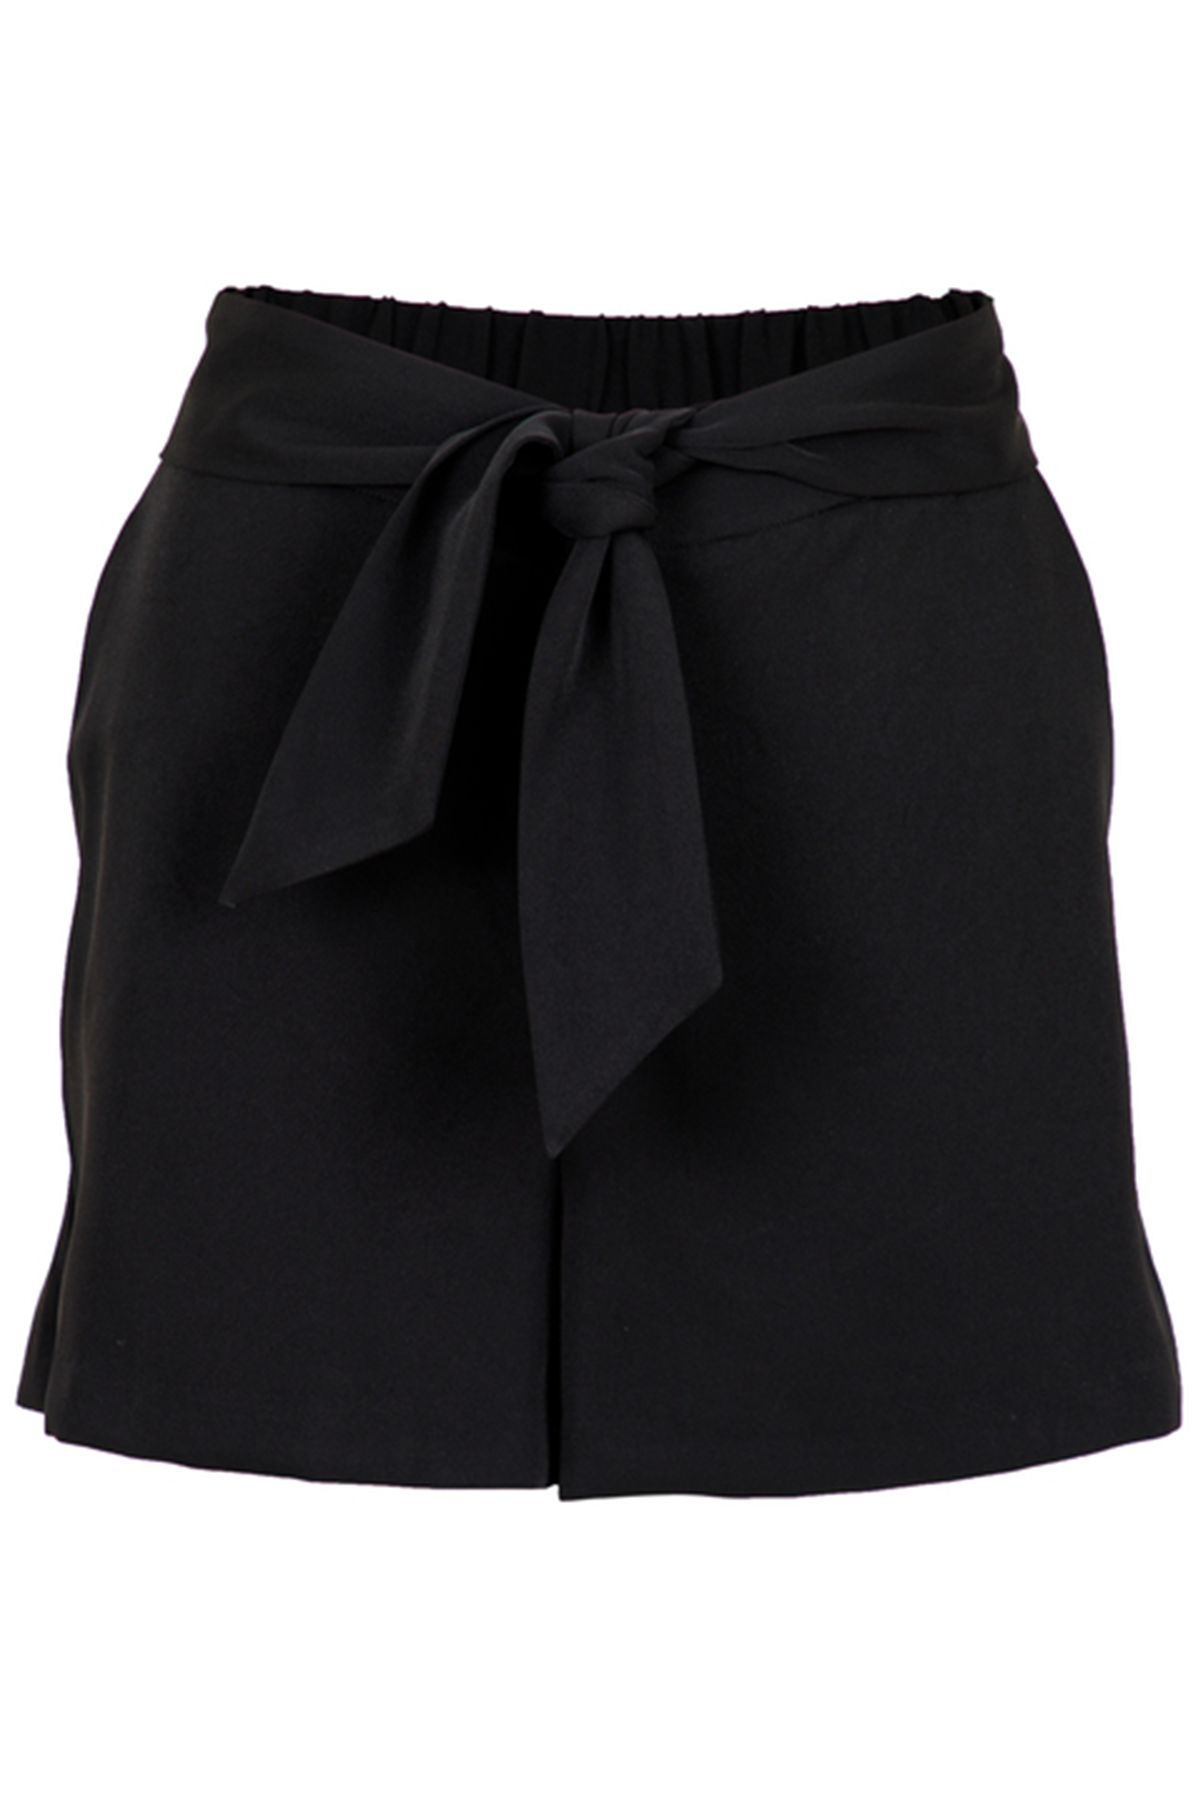 Image of   NEO NOIR VALIE SOLID SHORTS 151249 (Black, S)